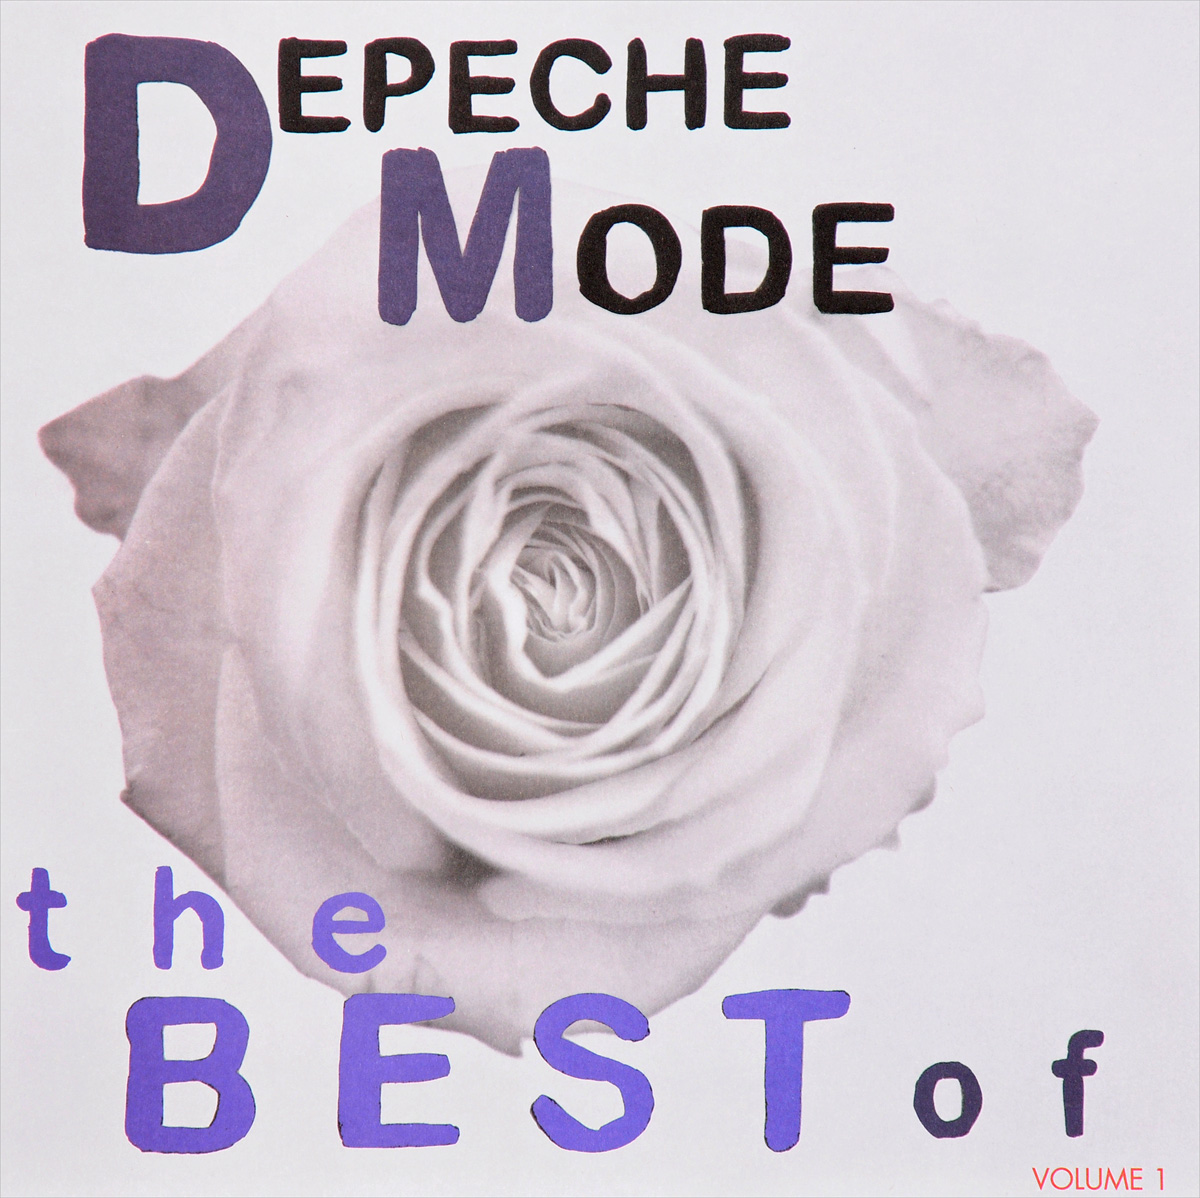 цена на Depeche Mode Depeche Mode. The Best Of Depeche Mode Volume 1 (3 LP)